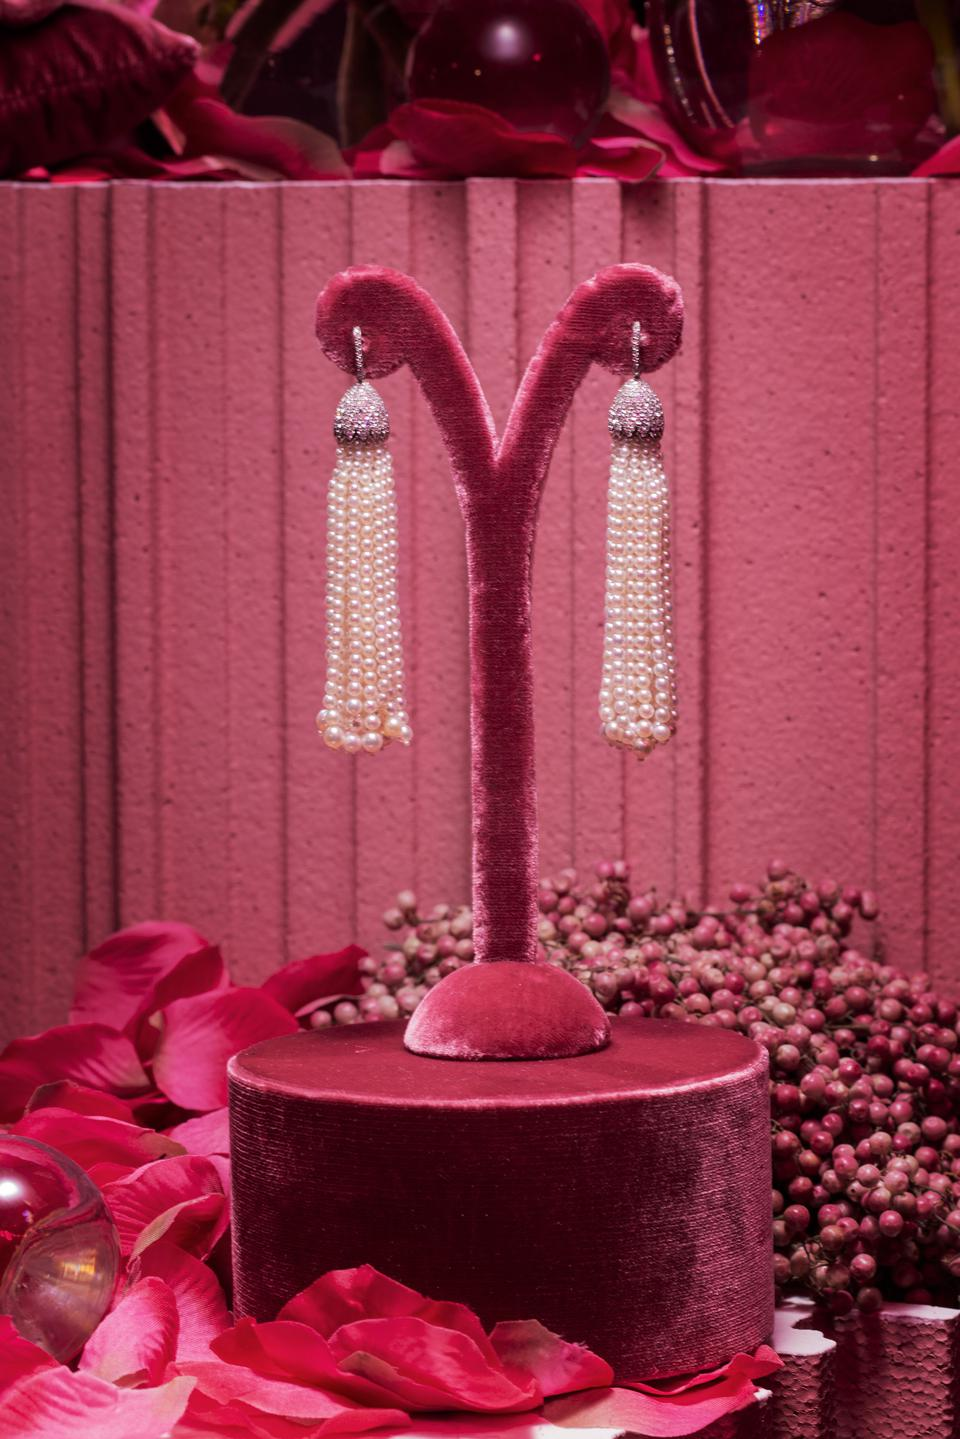 Diamond dome and pearl tassel earrings by Geneva-based Margaret Jewels exude luxury style